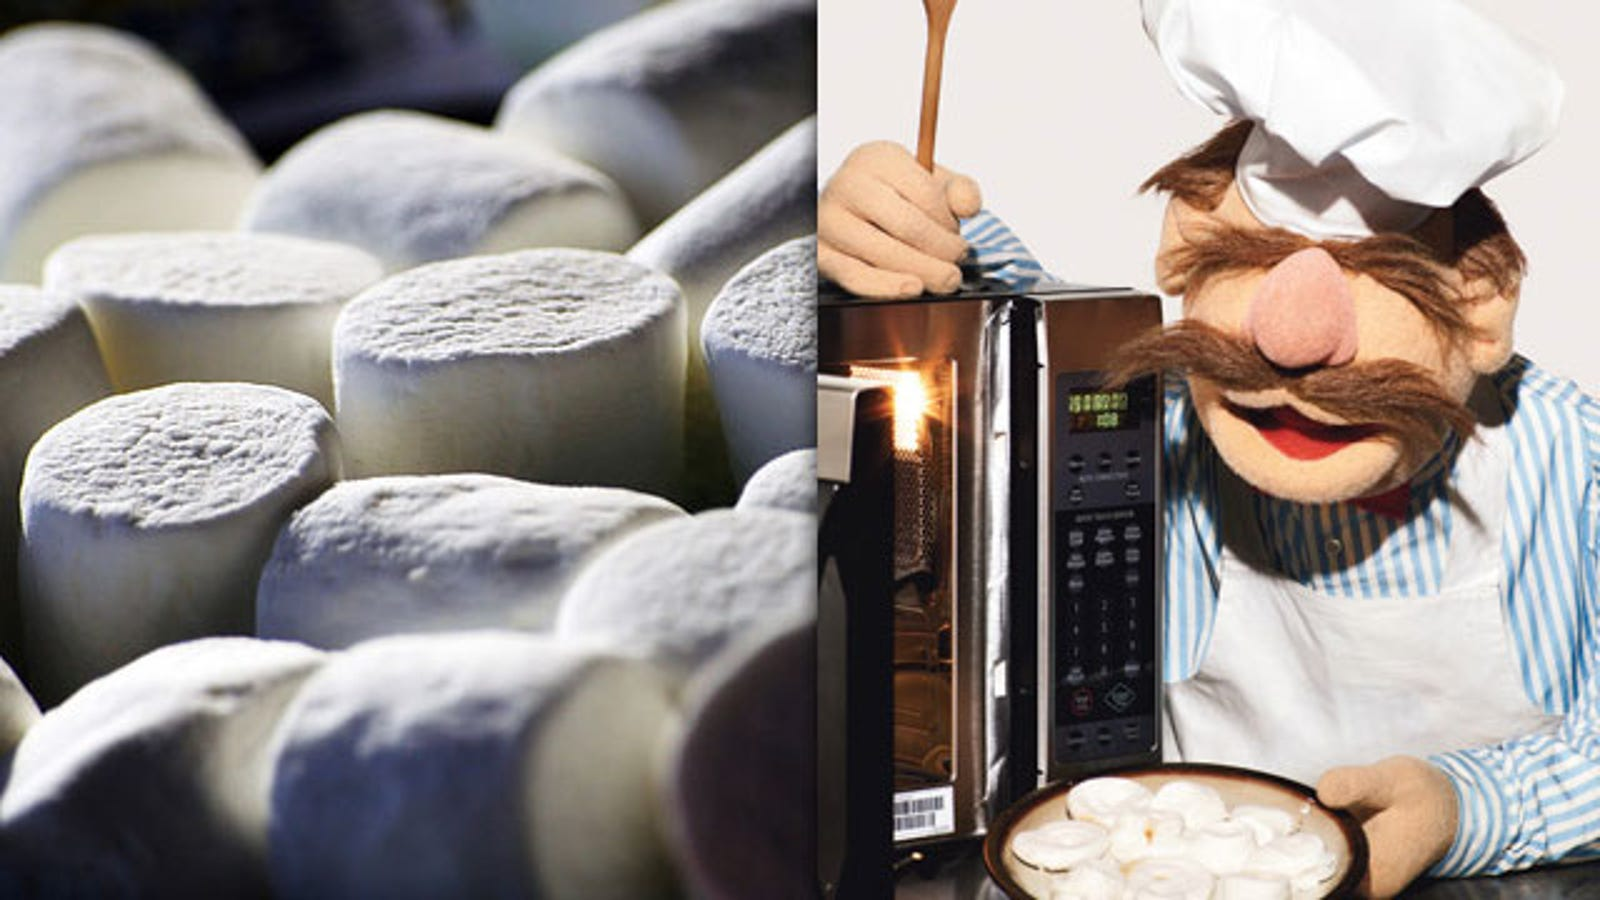 Nuke a Plate of Marshmallows to Find Your Microwave's Best